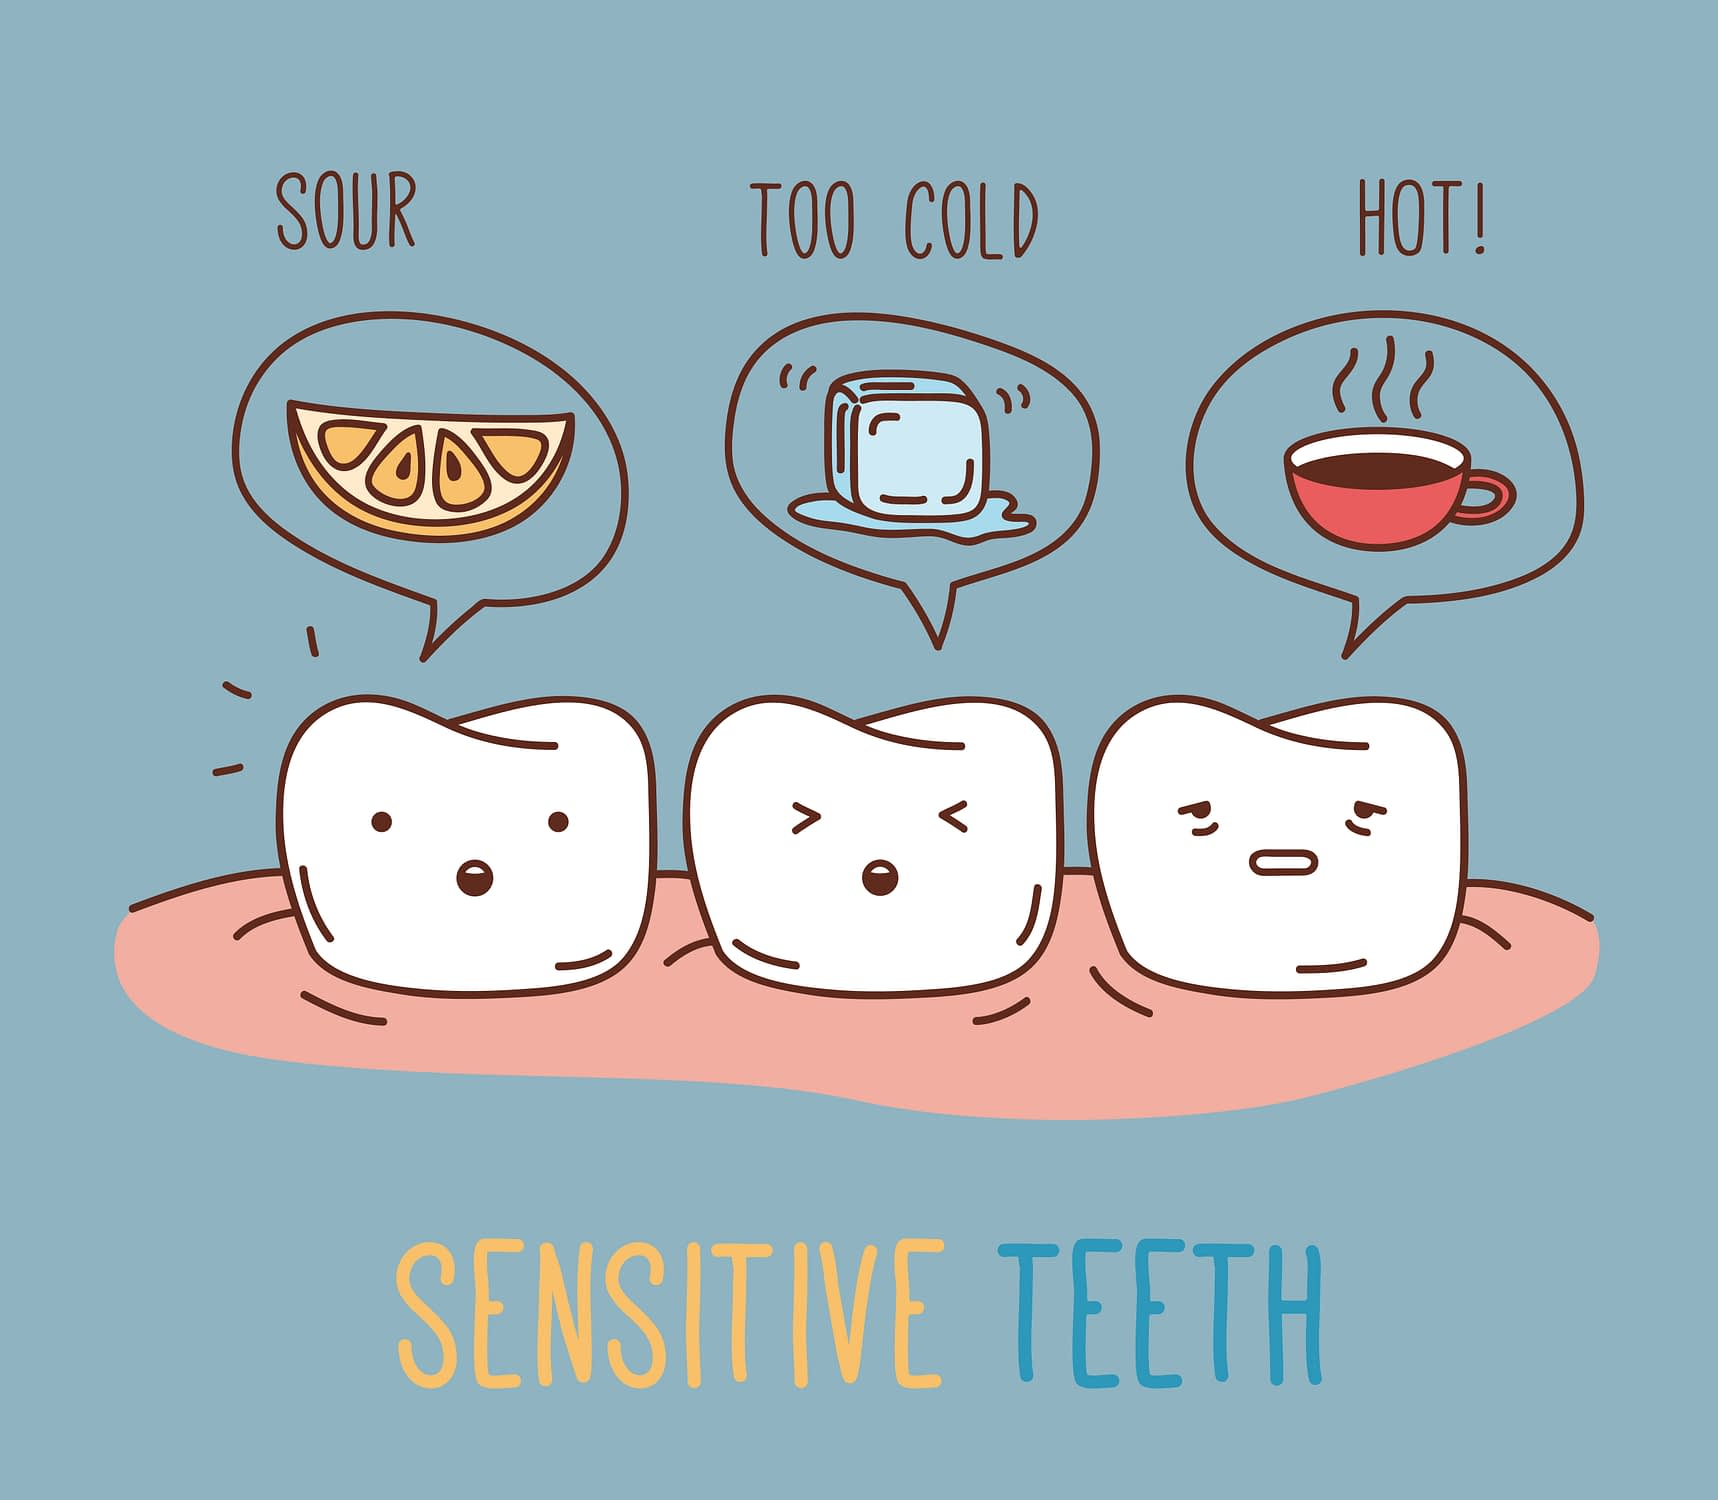 A tooth that's feeling sensitive